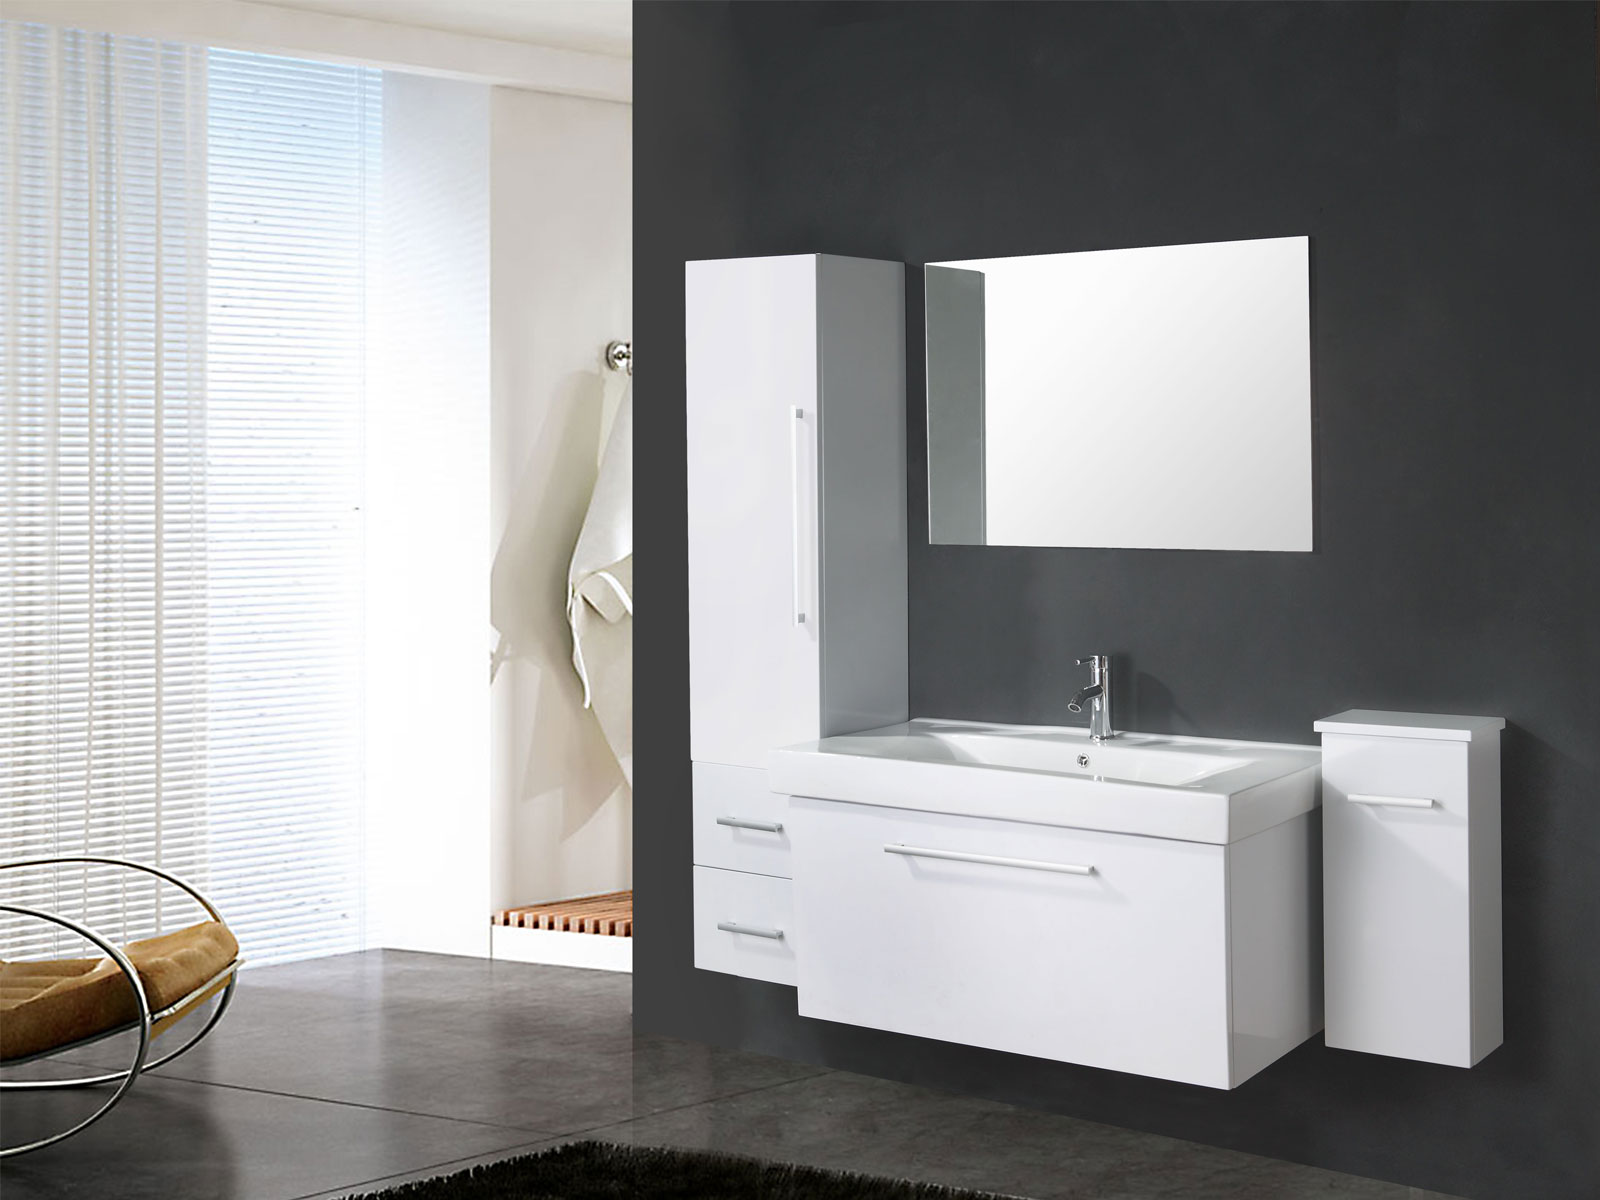 White London - Mobile bagno arredo bagno 100 cm lavabo e colonne ...